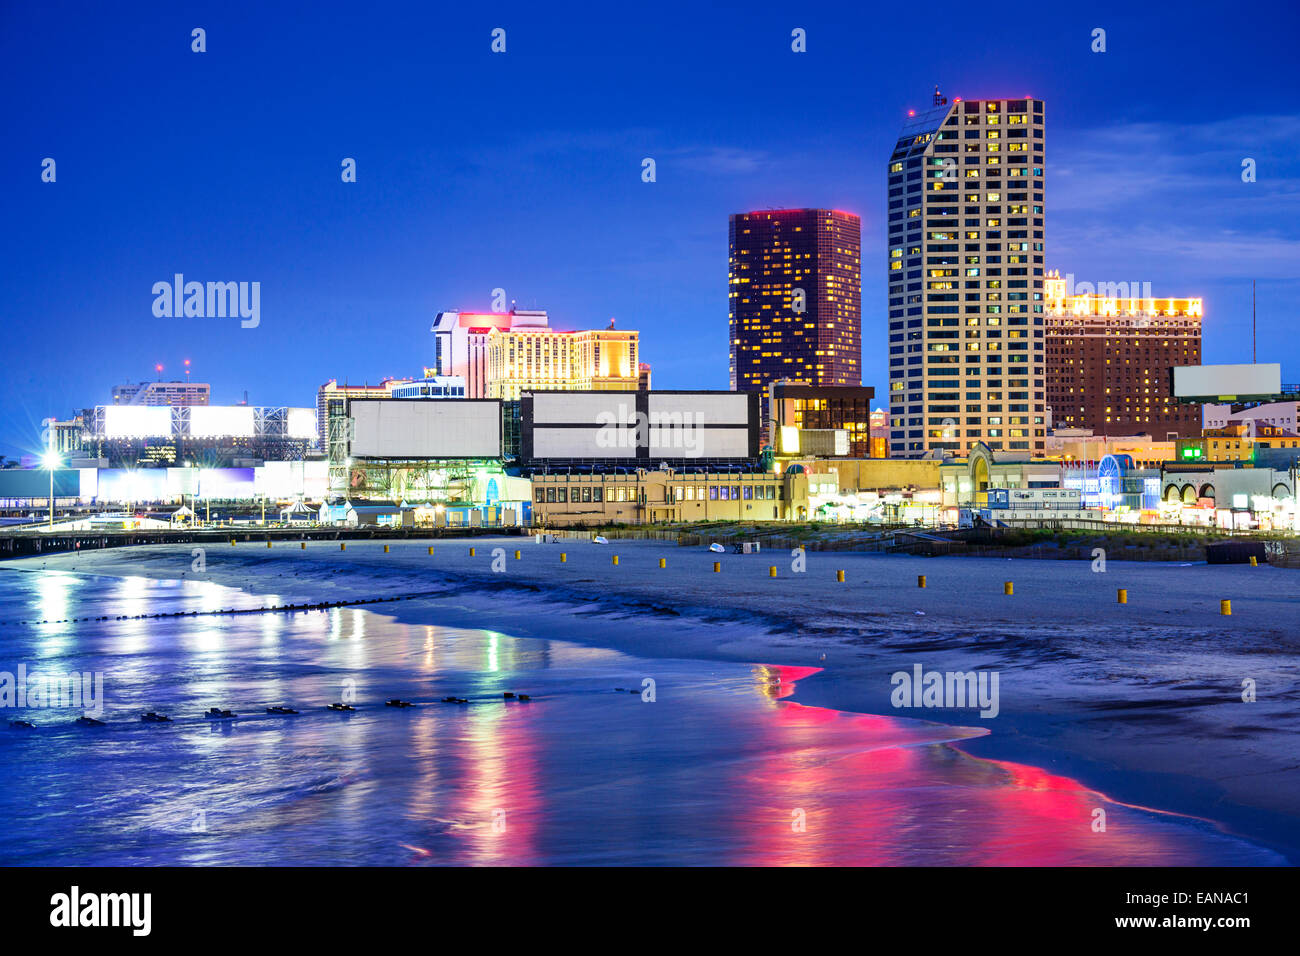 Atlantic City, New Jersey, USA resort casinos cityscape on the shore at night. - Stock Image